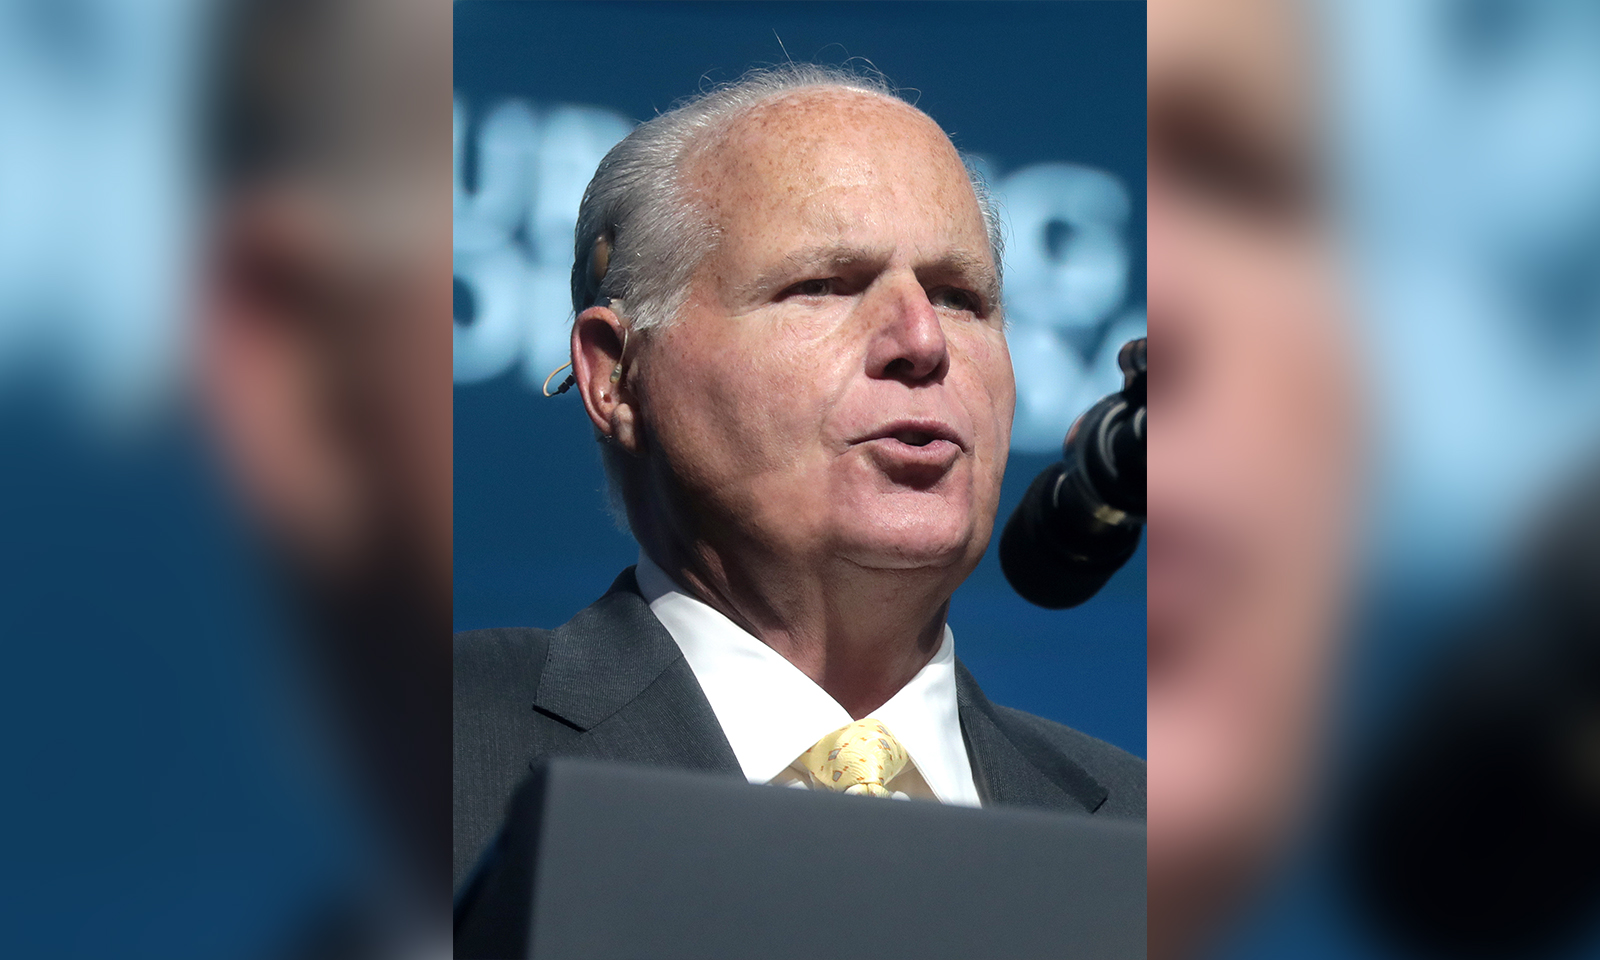 Rush Limbaugh Tells Listeners He's Been Diagnosed With Lung Cancer